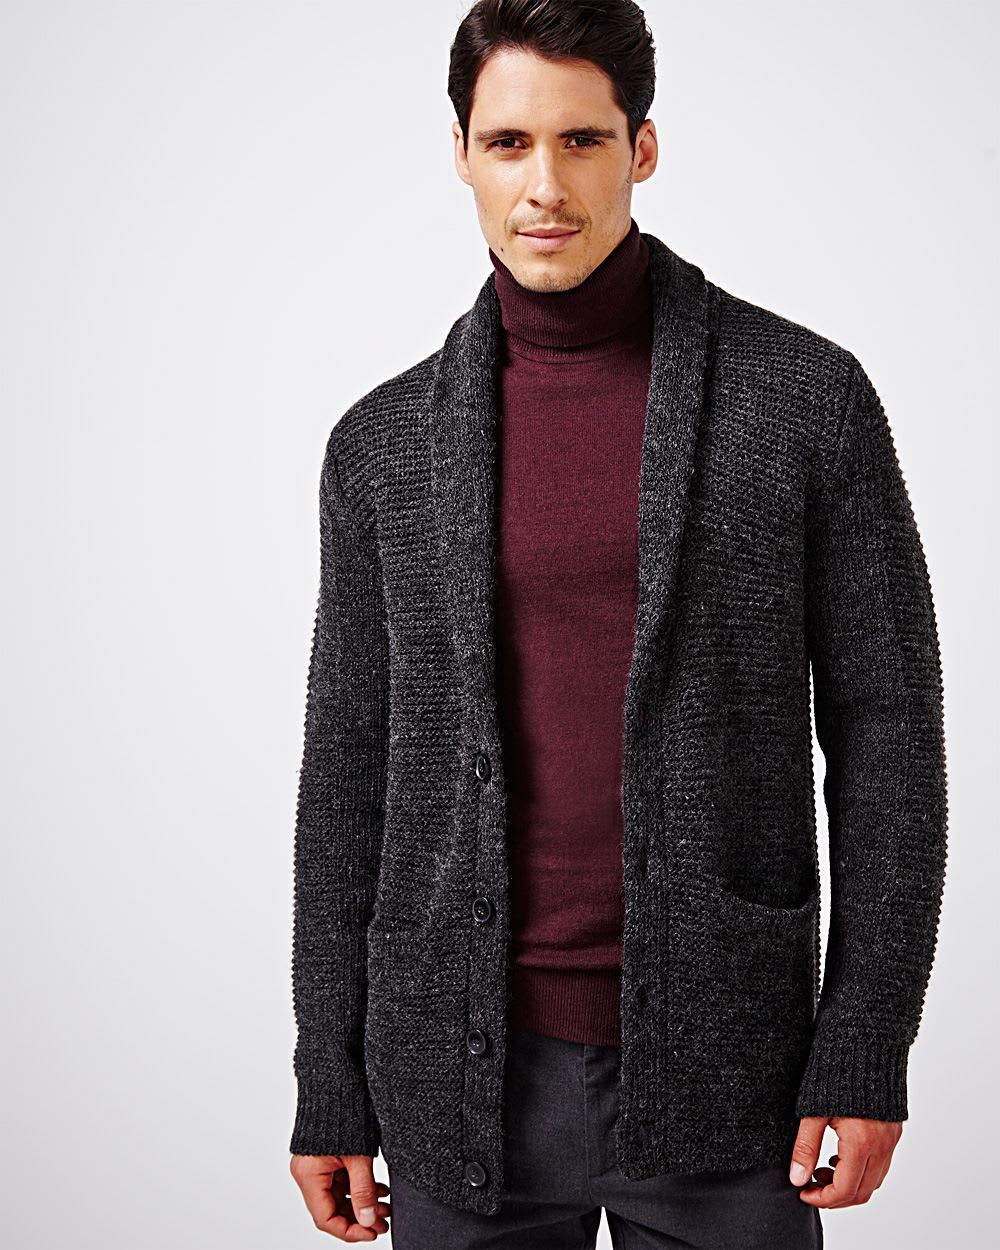 Long shawl collar cardigan | RW&CO.